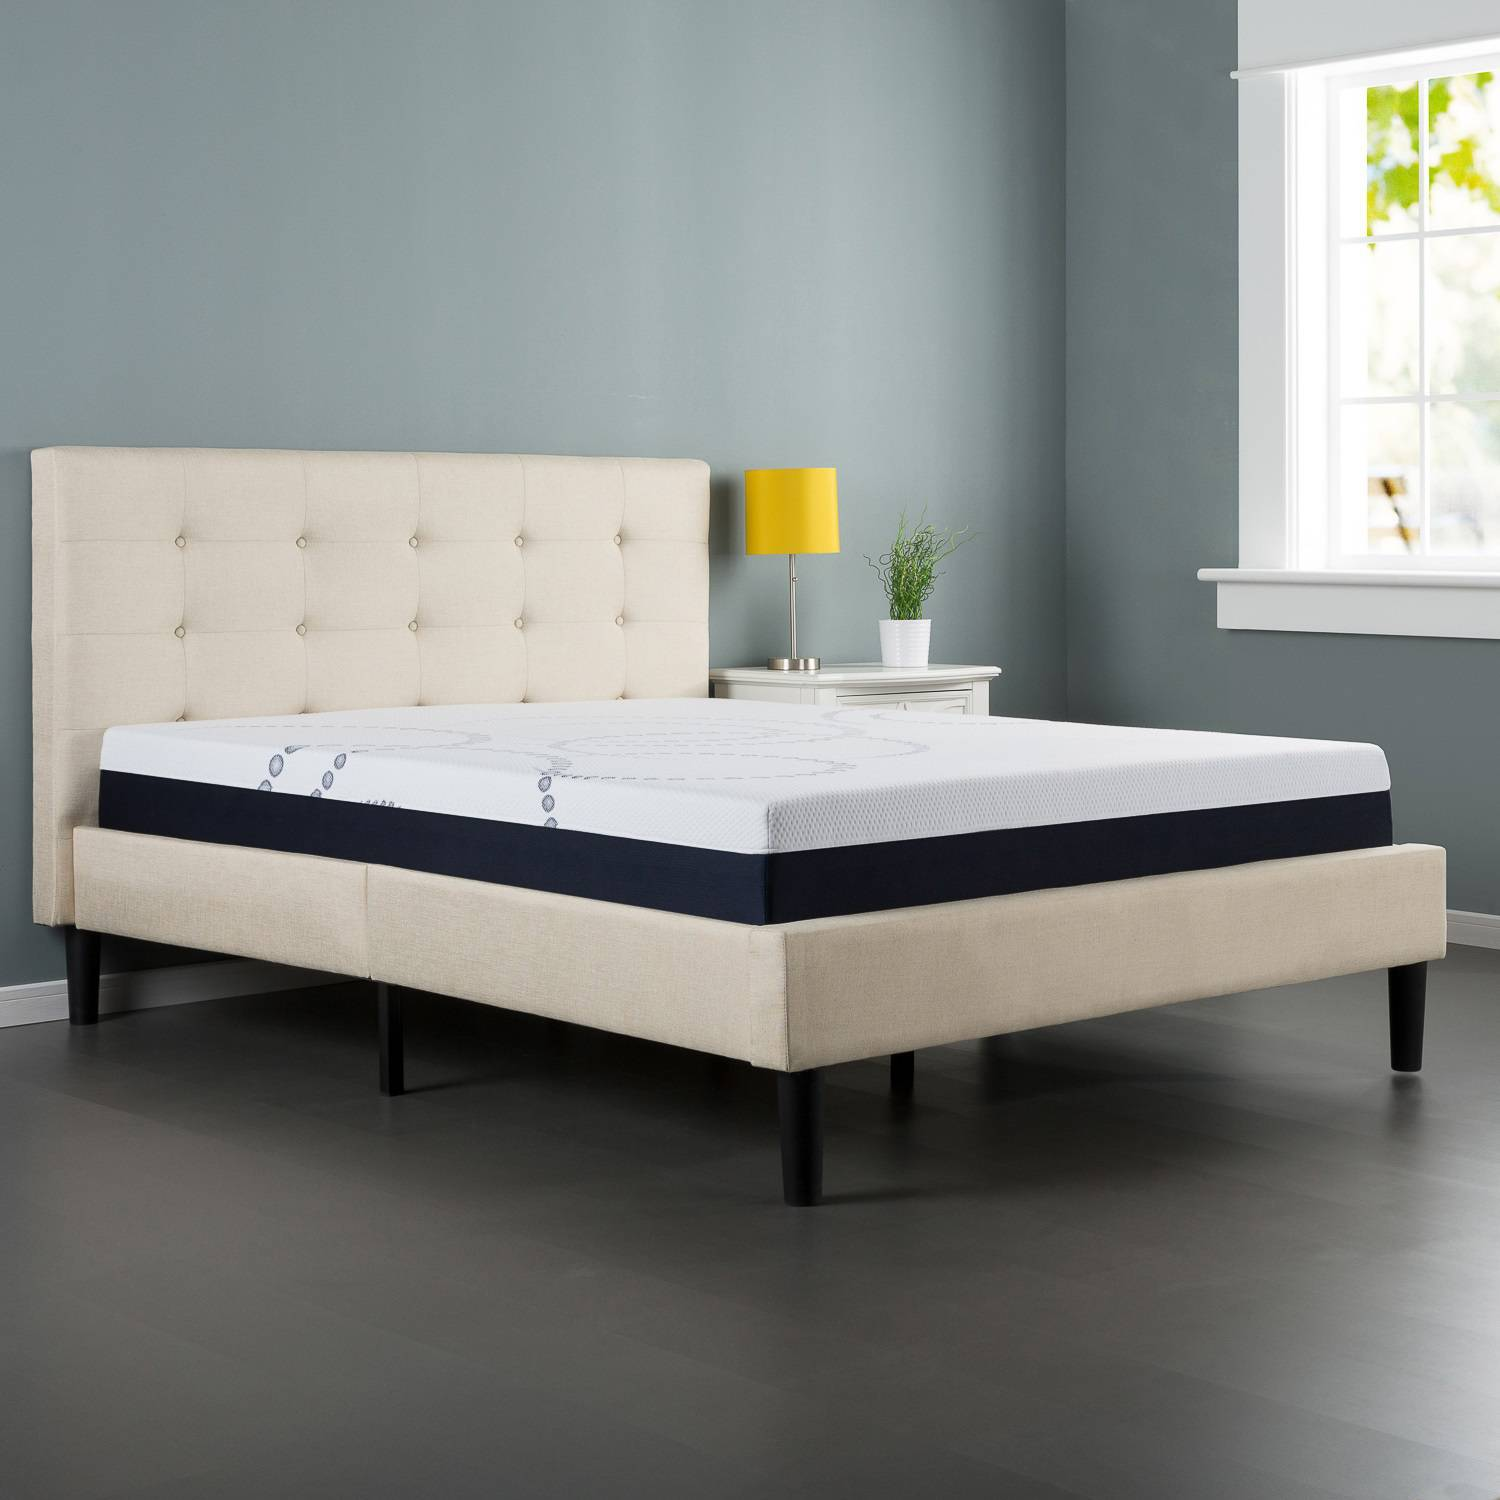 Zinus Upholstered On Tufted Platform Bed With Wooden Slats Queen